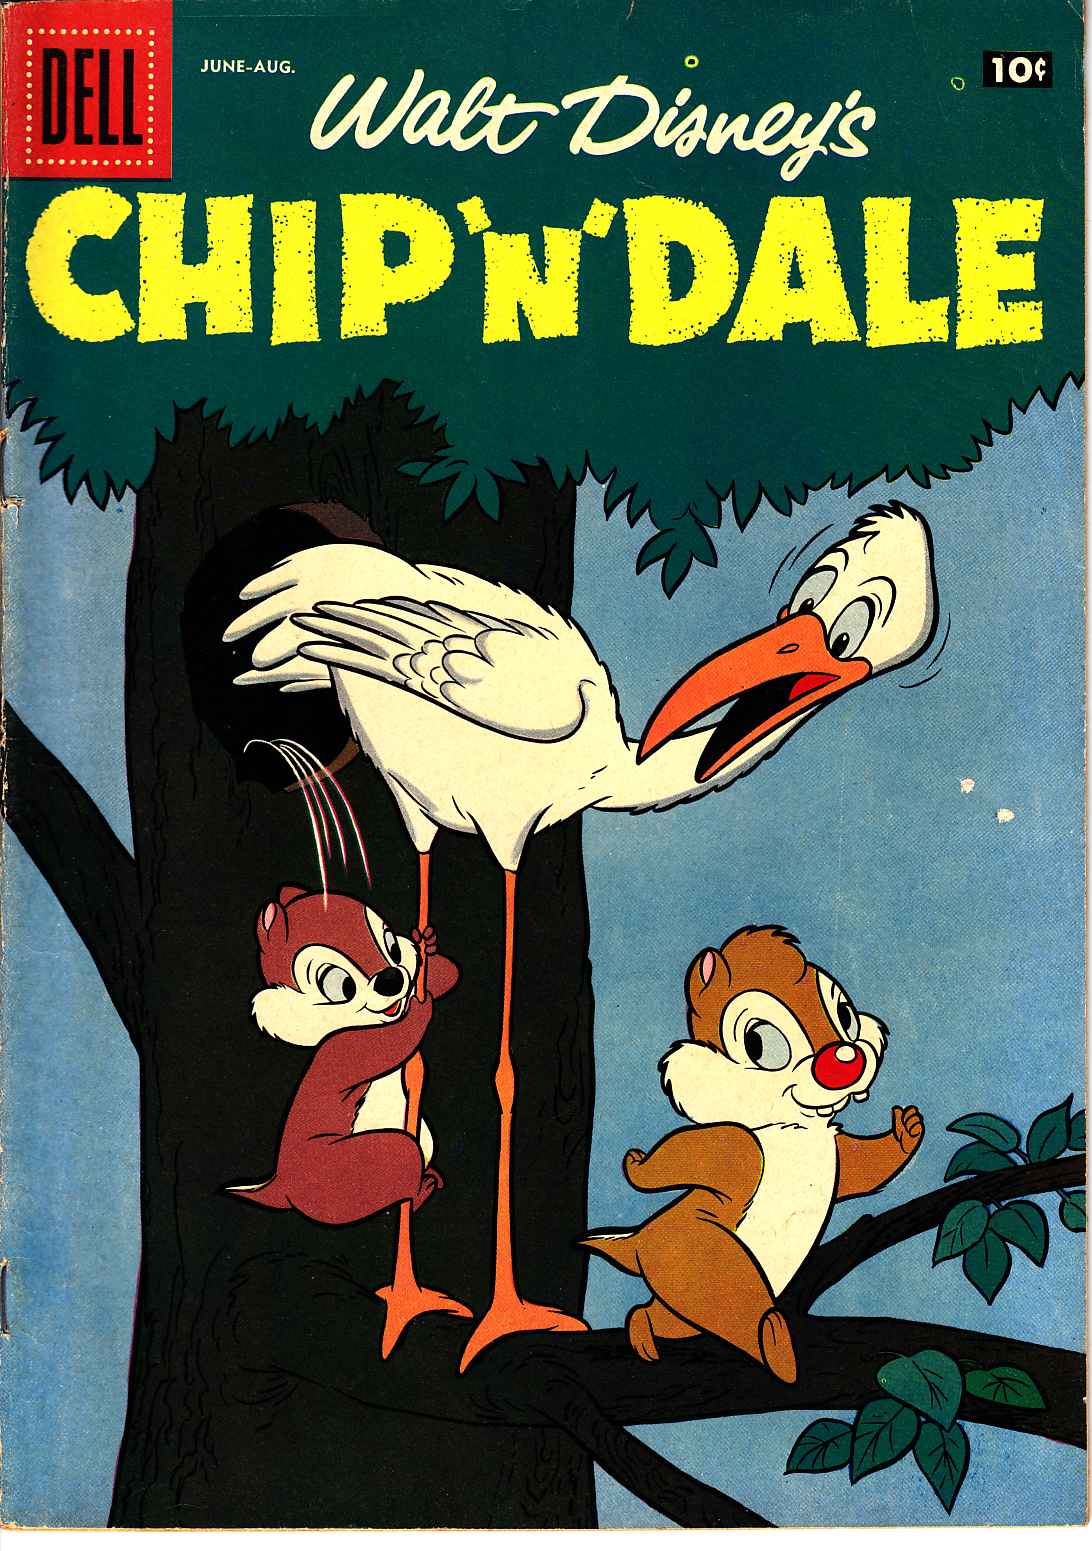 Chip N Dale #14 [Dell Comic] THUMBNAIL